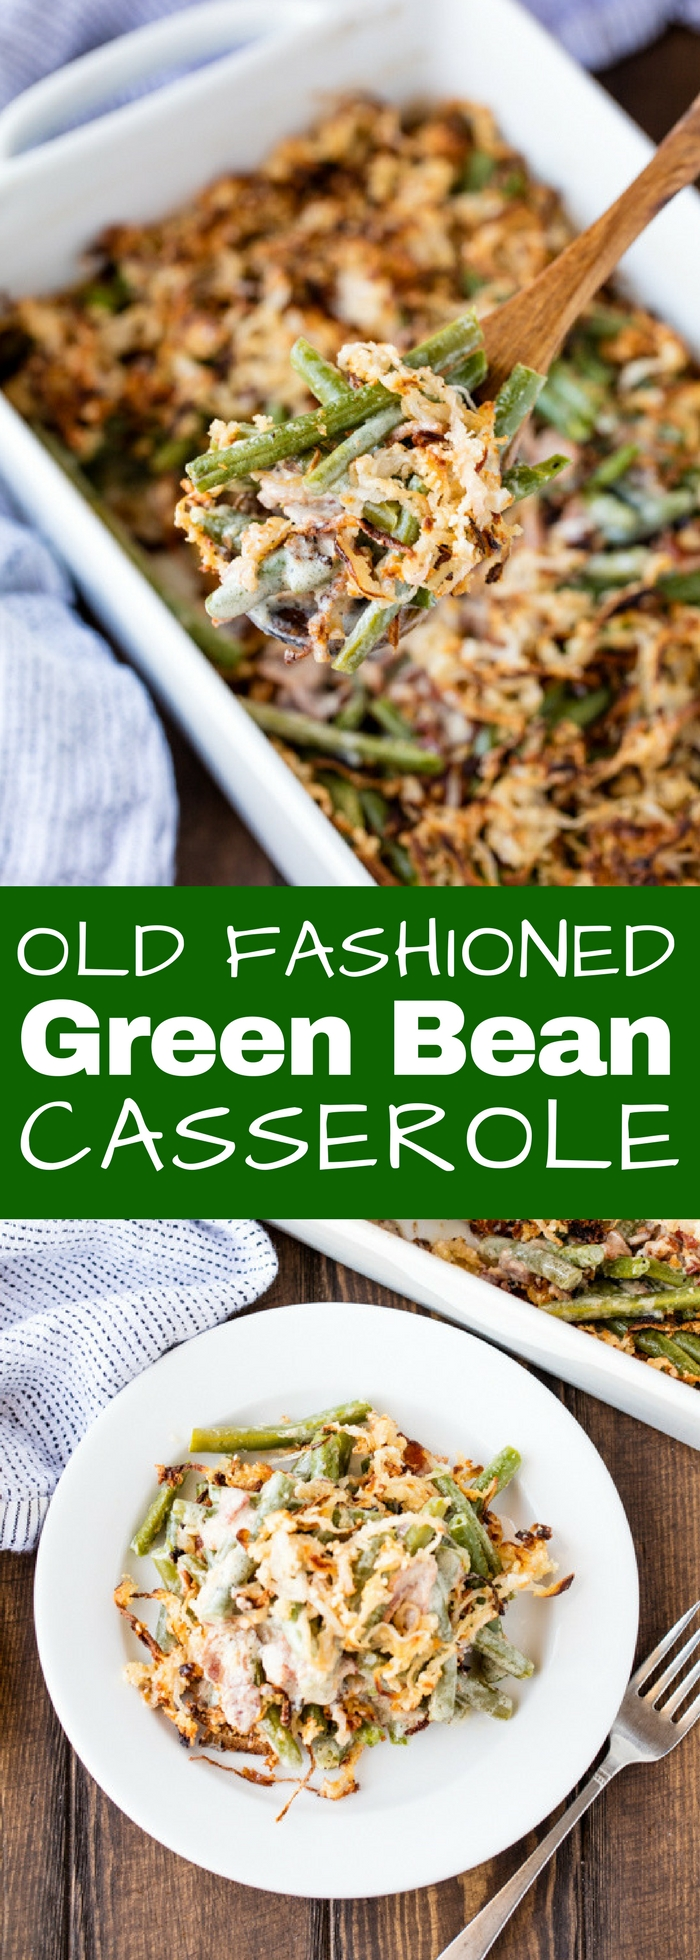 This Old Fashioned Green Bean Casserole is made completely from scratch. It's the best green bean casserole recipe you'll ever make and is sure to become an instant family favorite.